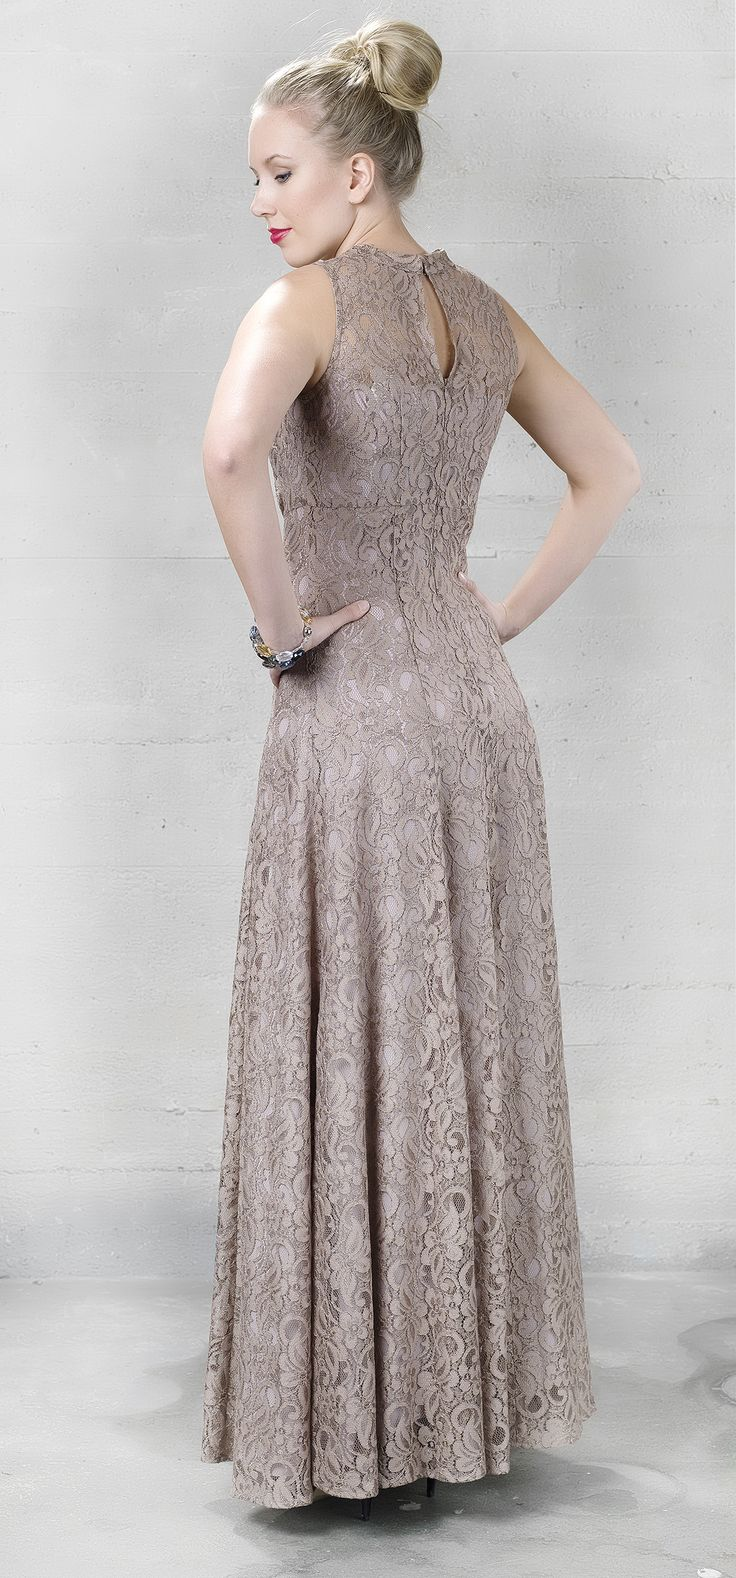 by Marja 2013 Lace evening gown - pitsinen iltapuku.